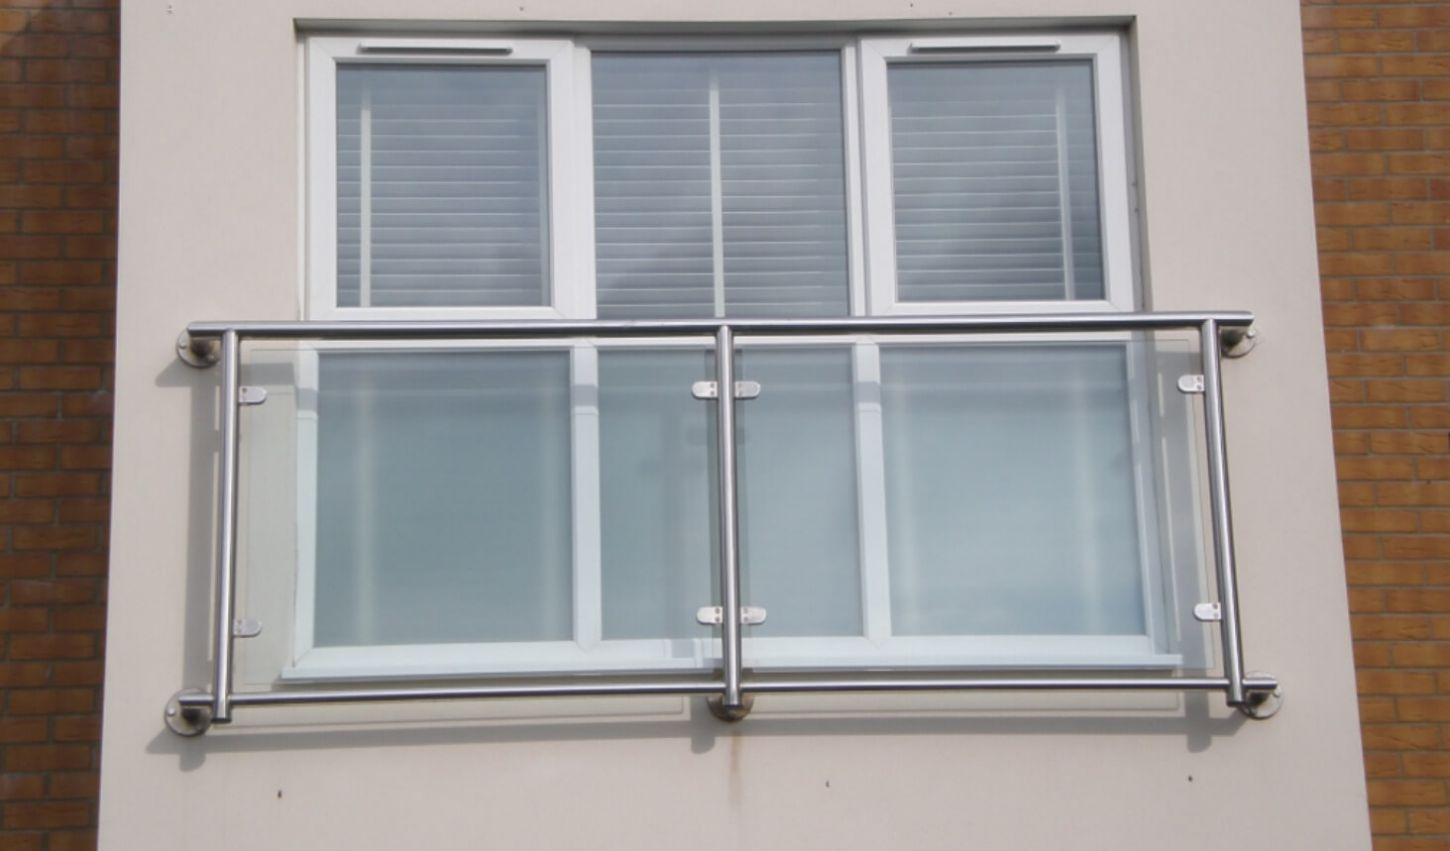 stainless steel juliette balcony